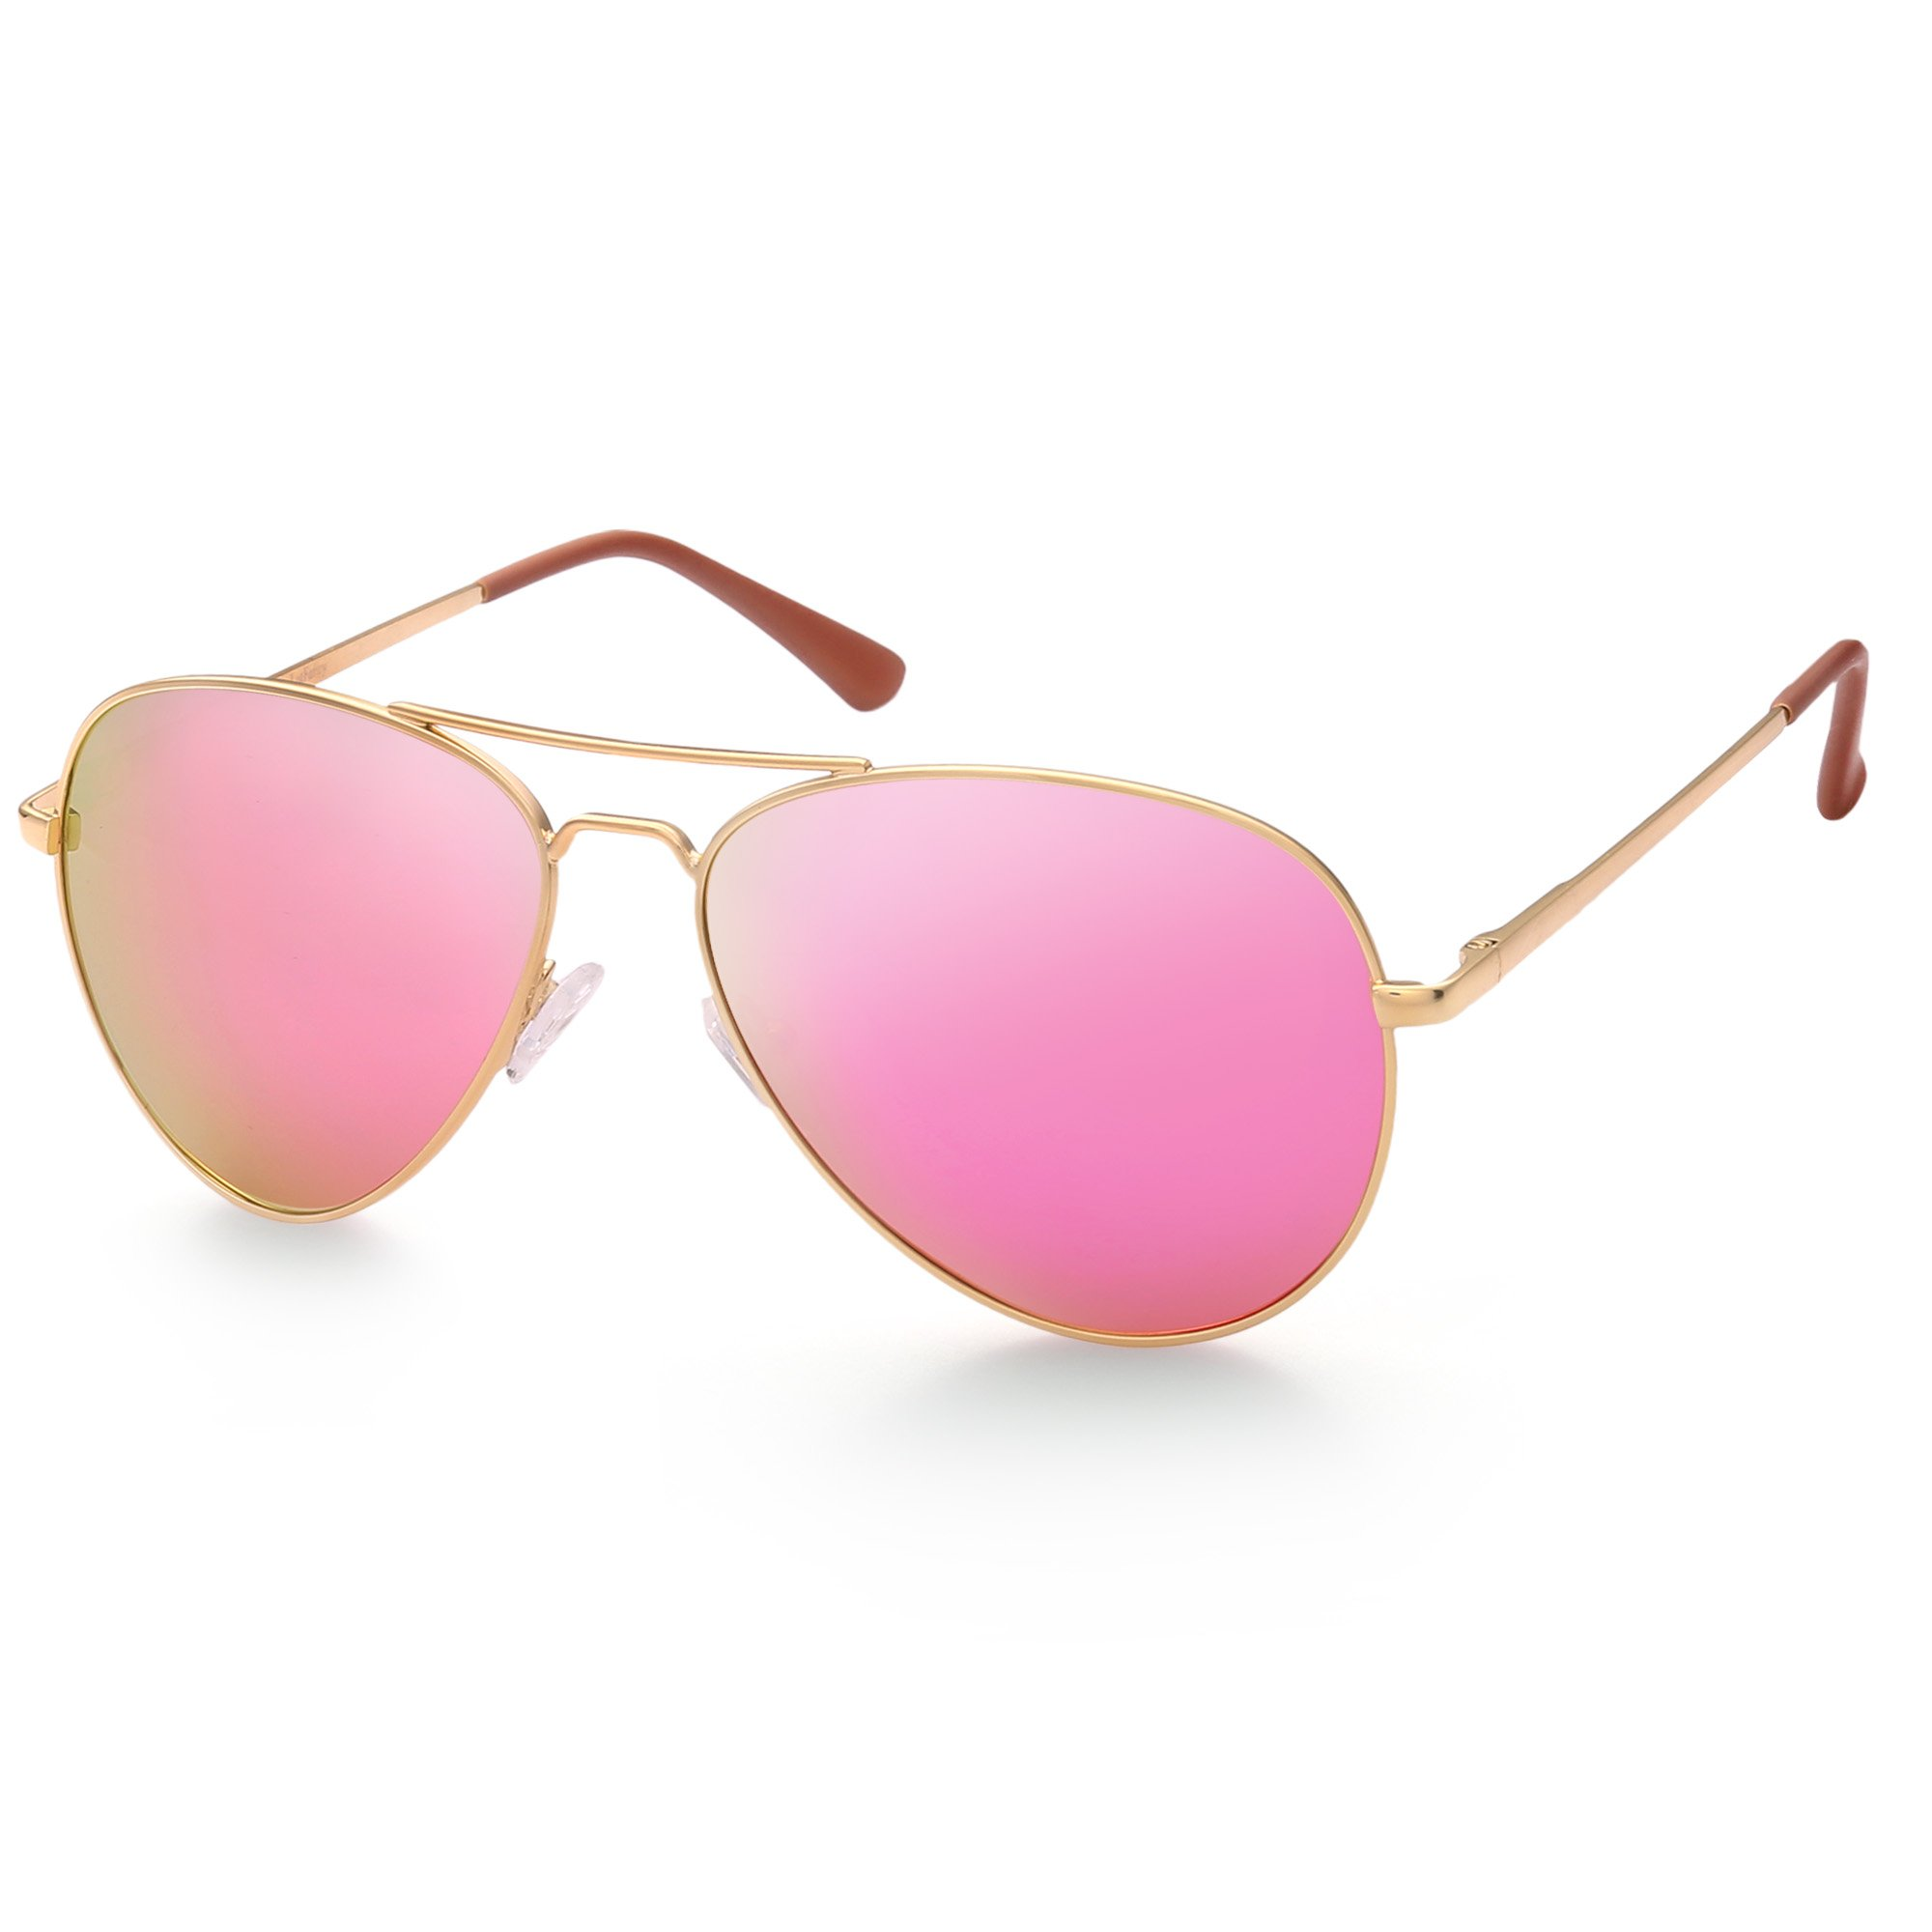 9d7f5077d9736 Details about Polarized Aviator Sunglasses for Women